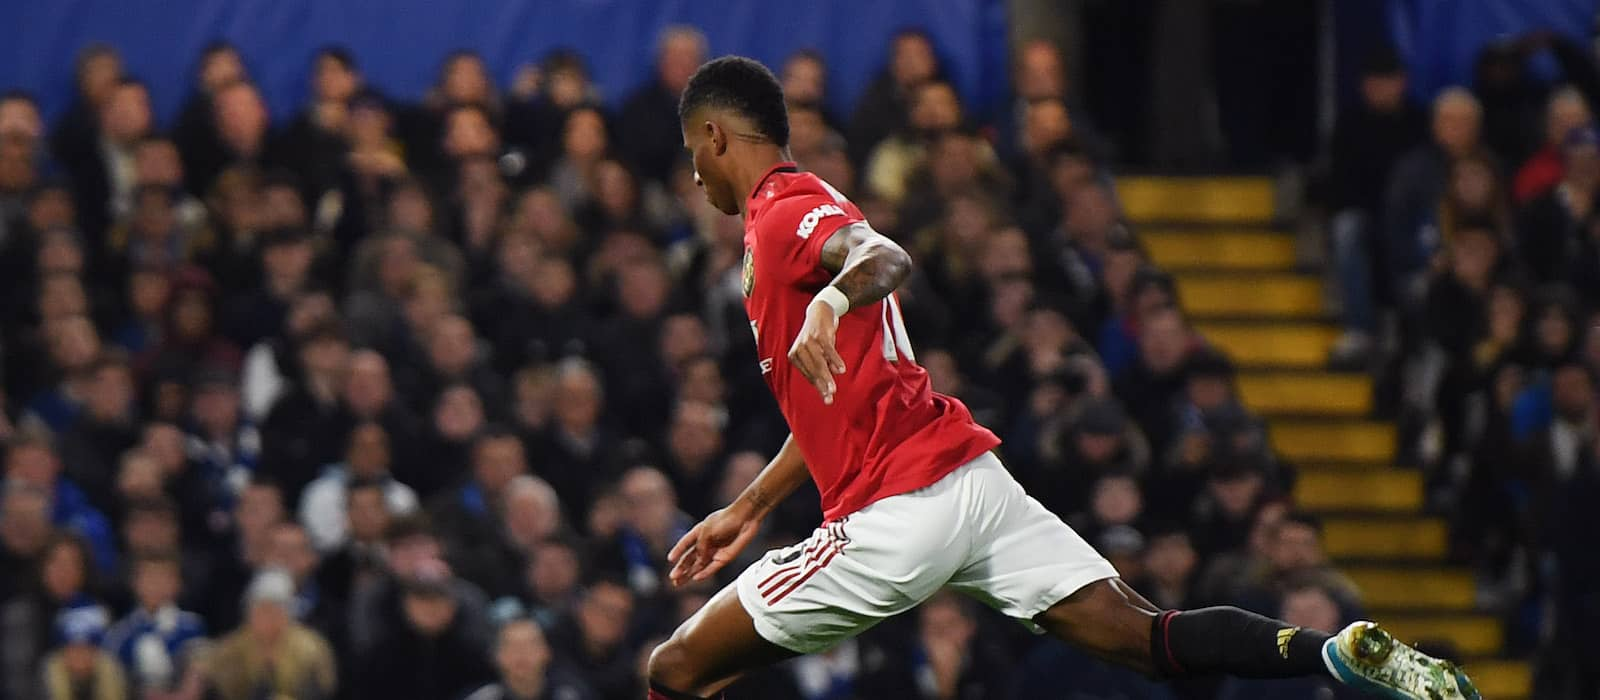 Darren Fletcher discusses Marcus Rashford's potential at Manchester United